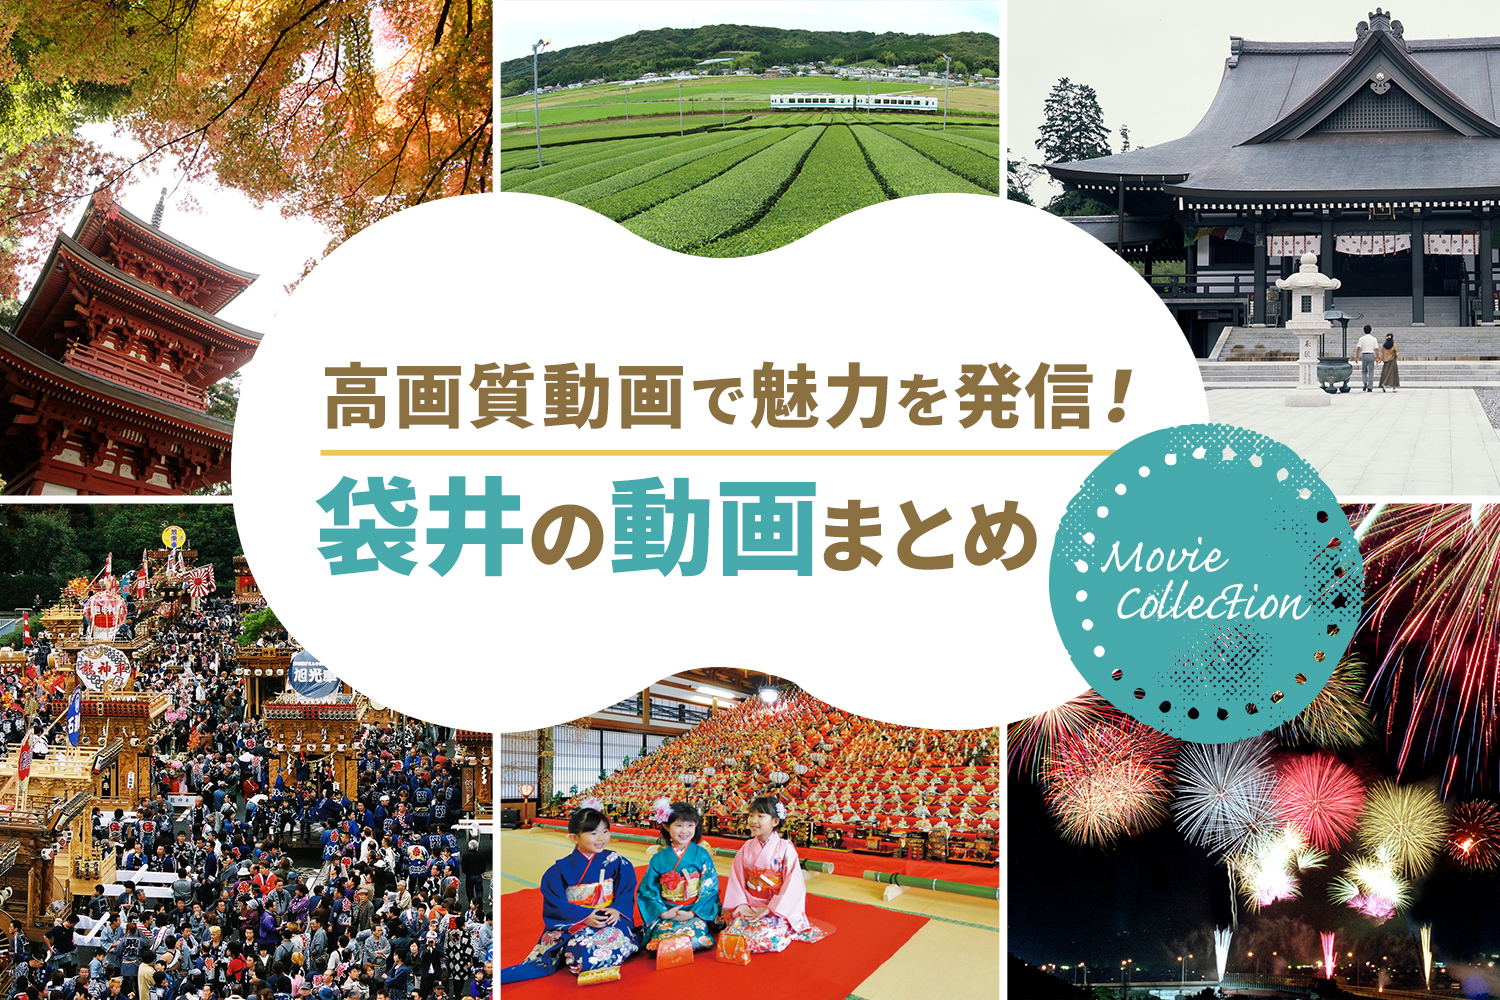 We send charm of Fukuroi with high-resolution video!